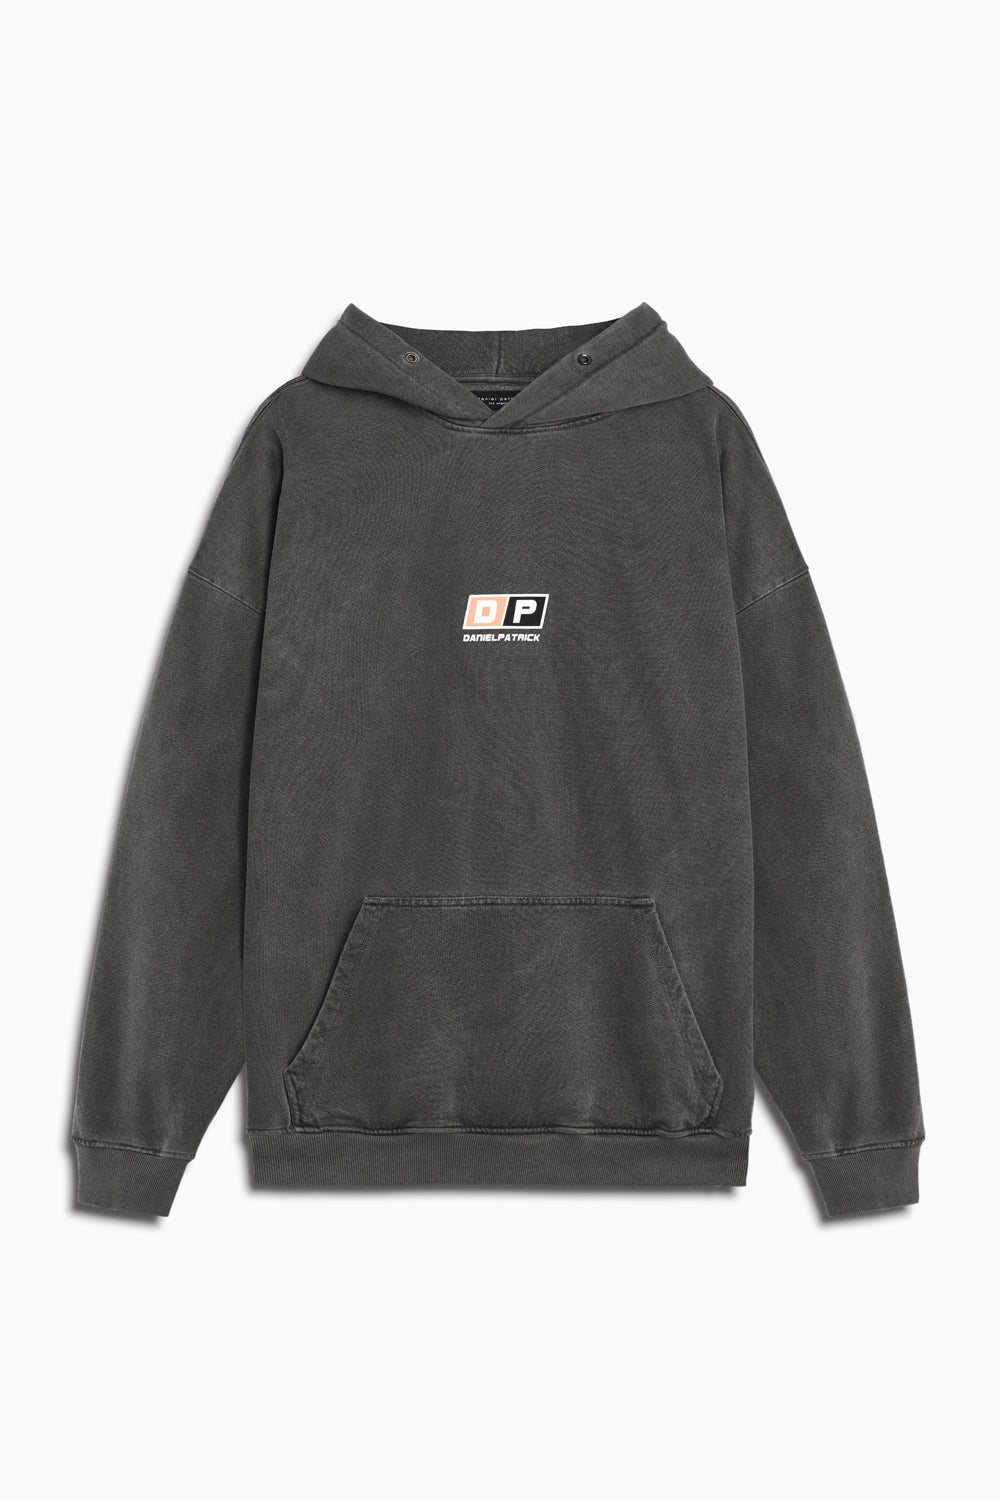 motorsport hoodie in vintage black/coral by daniel patrick